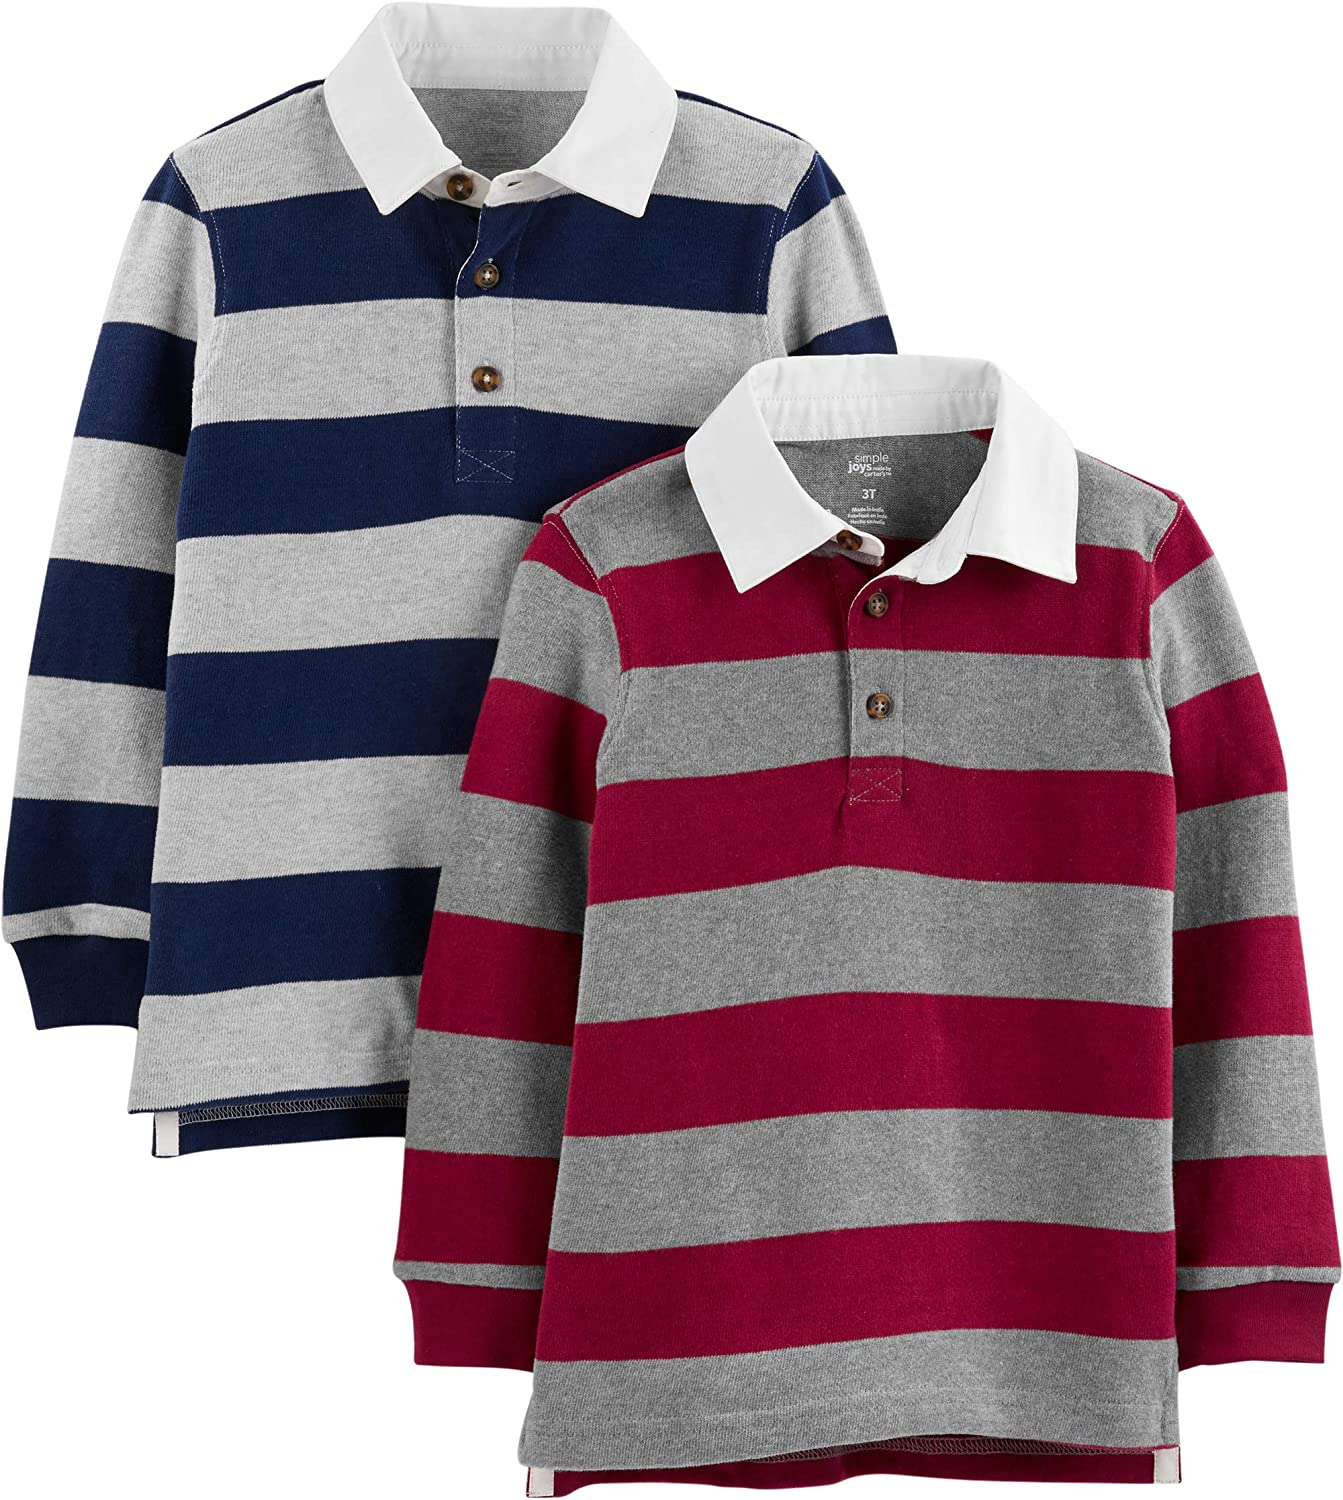 Simple Joys by Carters Toddler Boys 3-Pack Thermal Long Sleeve Shirts